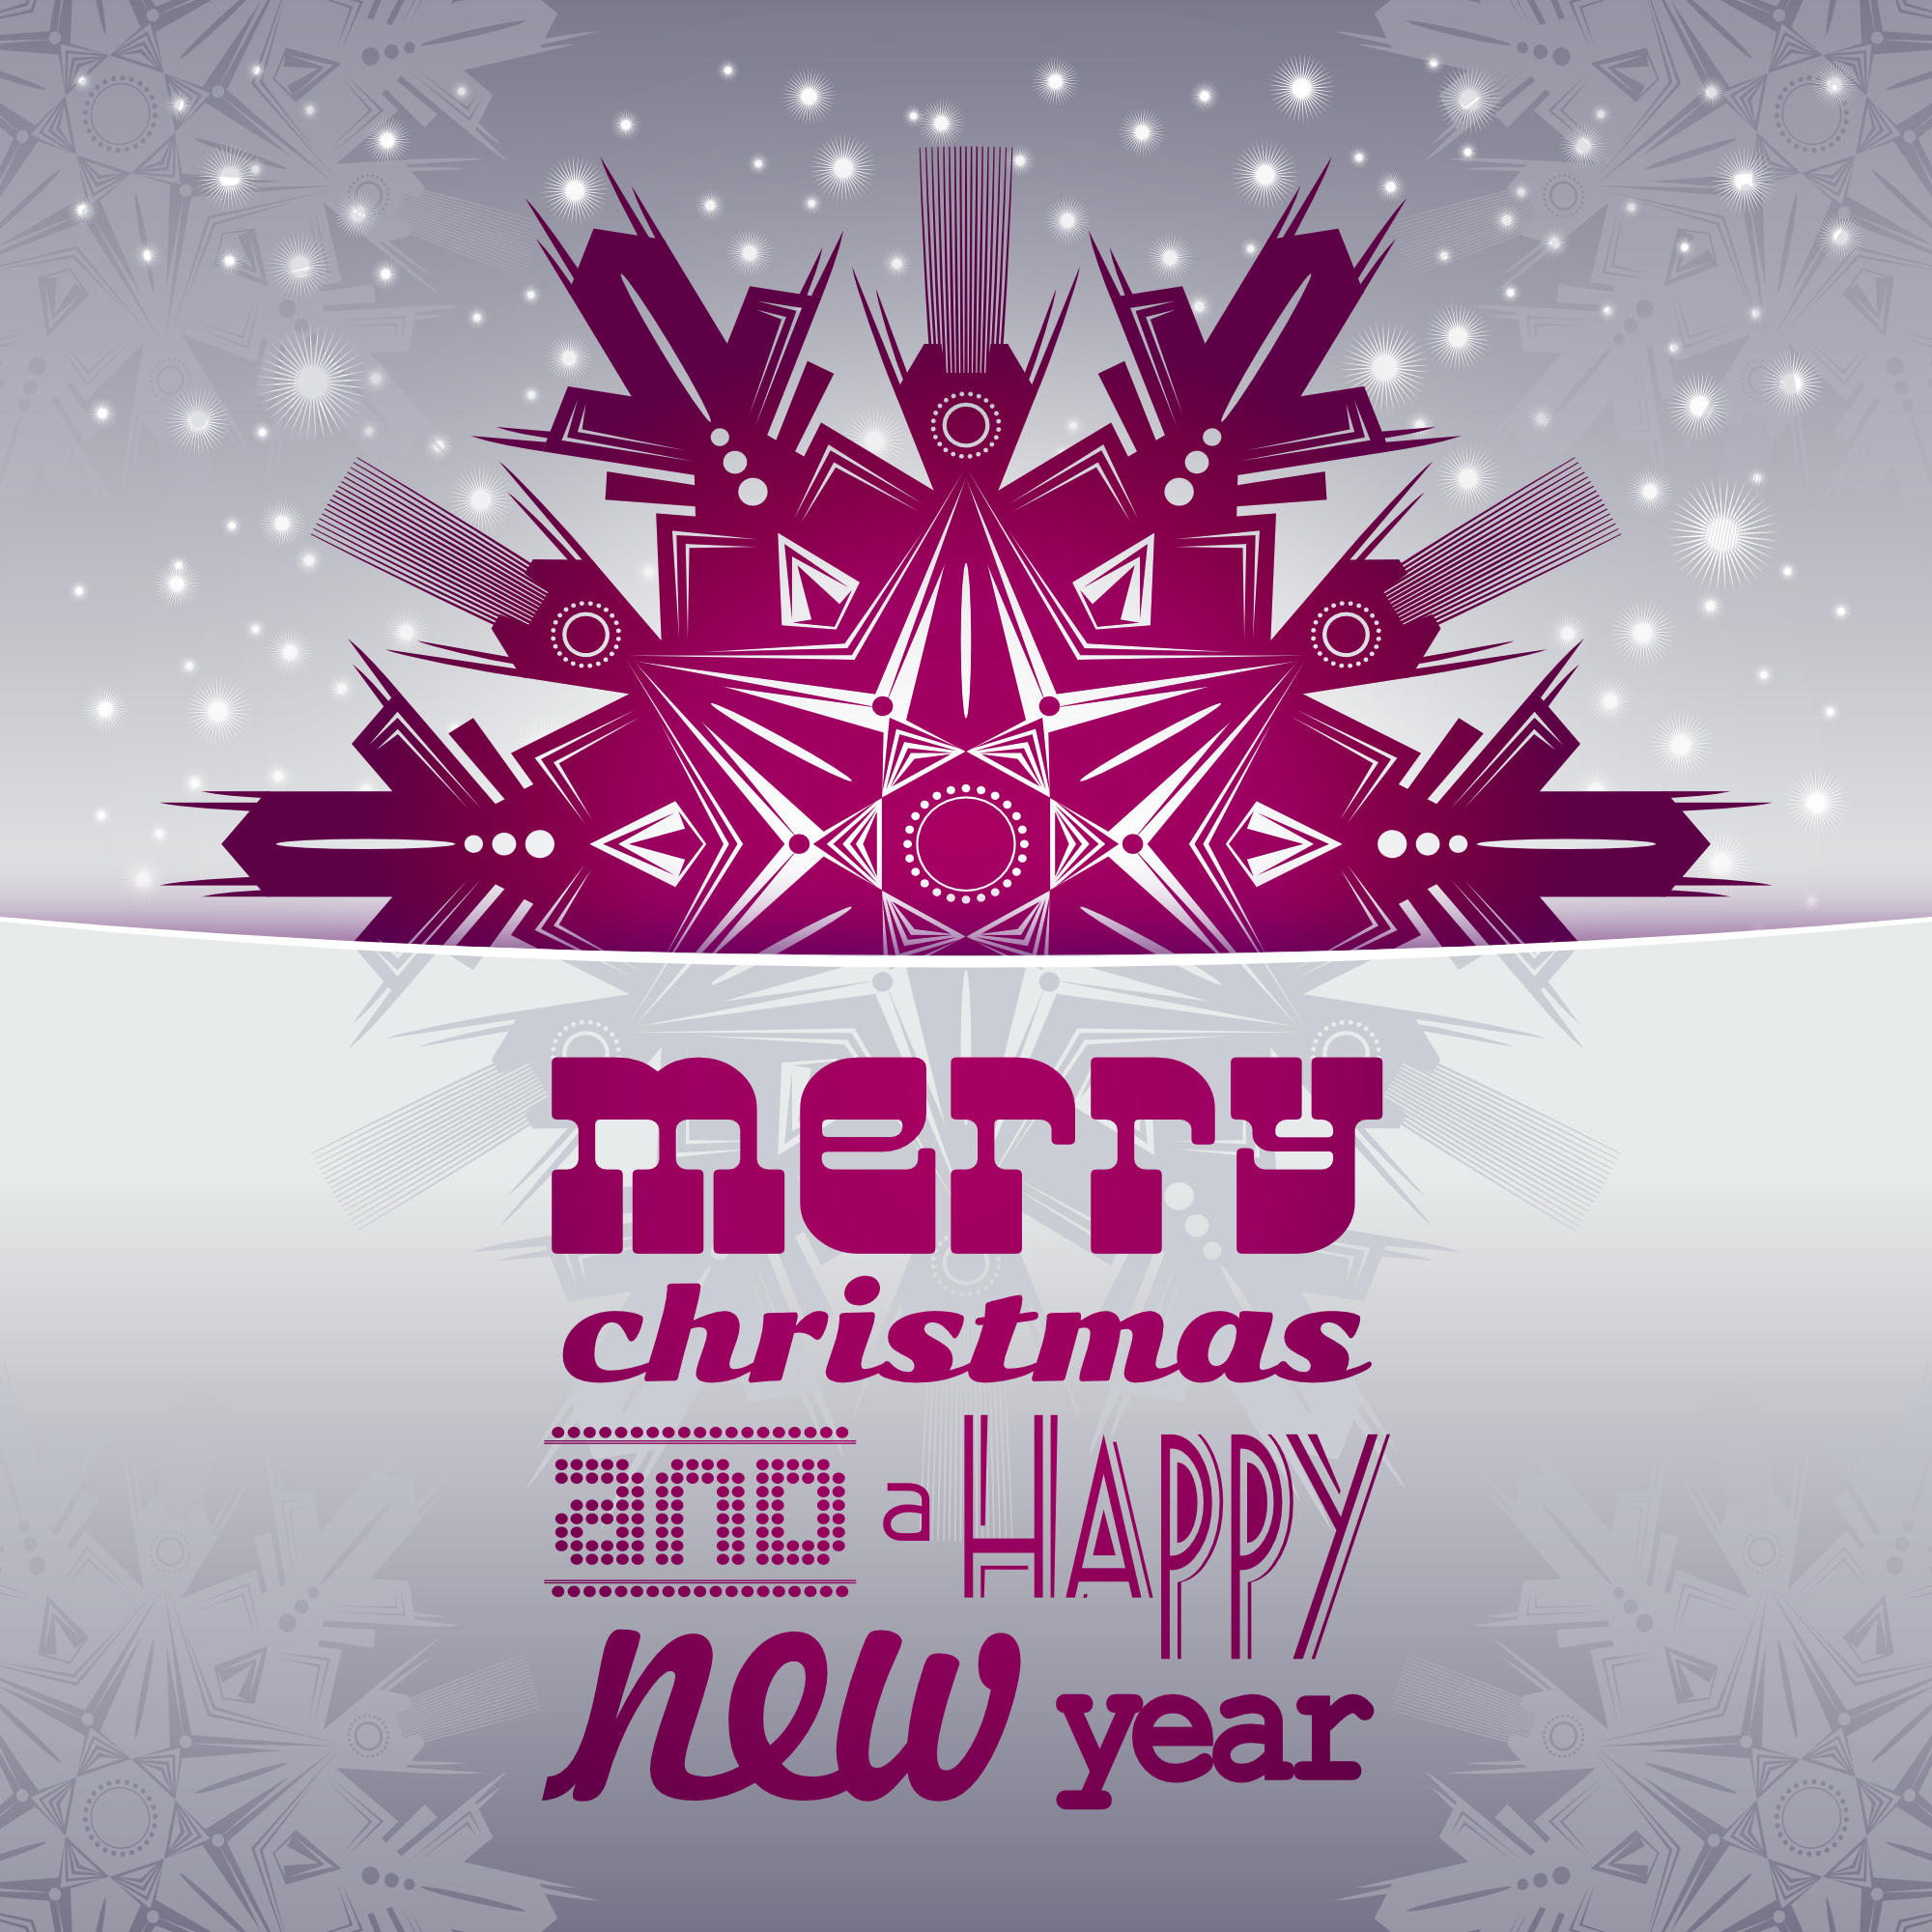 file merry christmas and happy new year 1 png wikimedia commons https commons wikimedia org wiki file merry christmas and happy new year 1 png